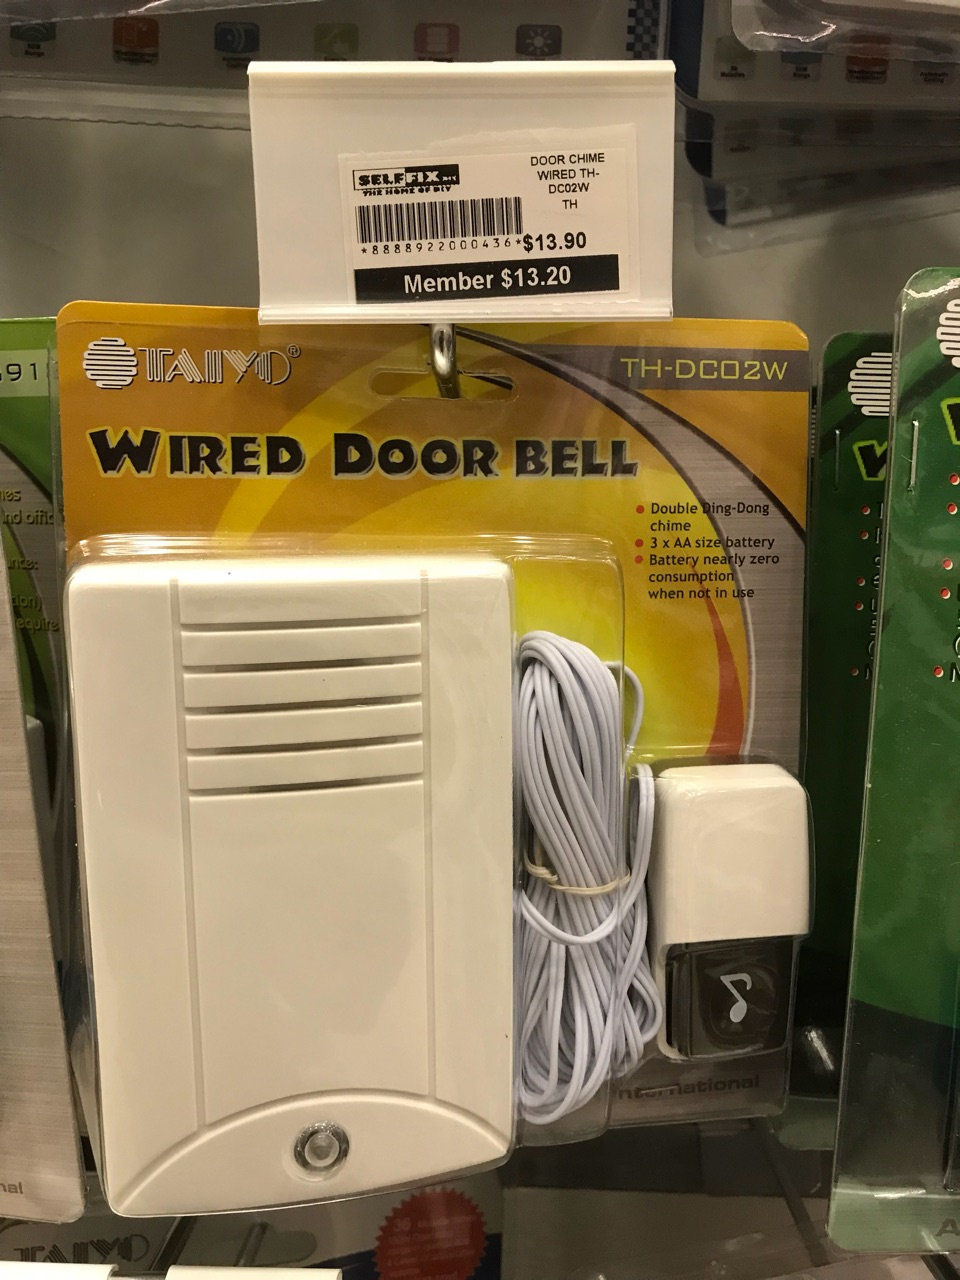 Every Need Want Day Rewiring Old Doorbell Taiyo Wired Door Chime Th Dc02w1390